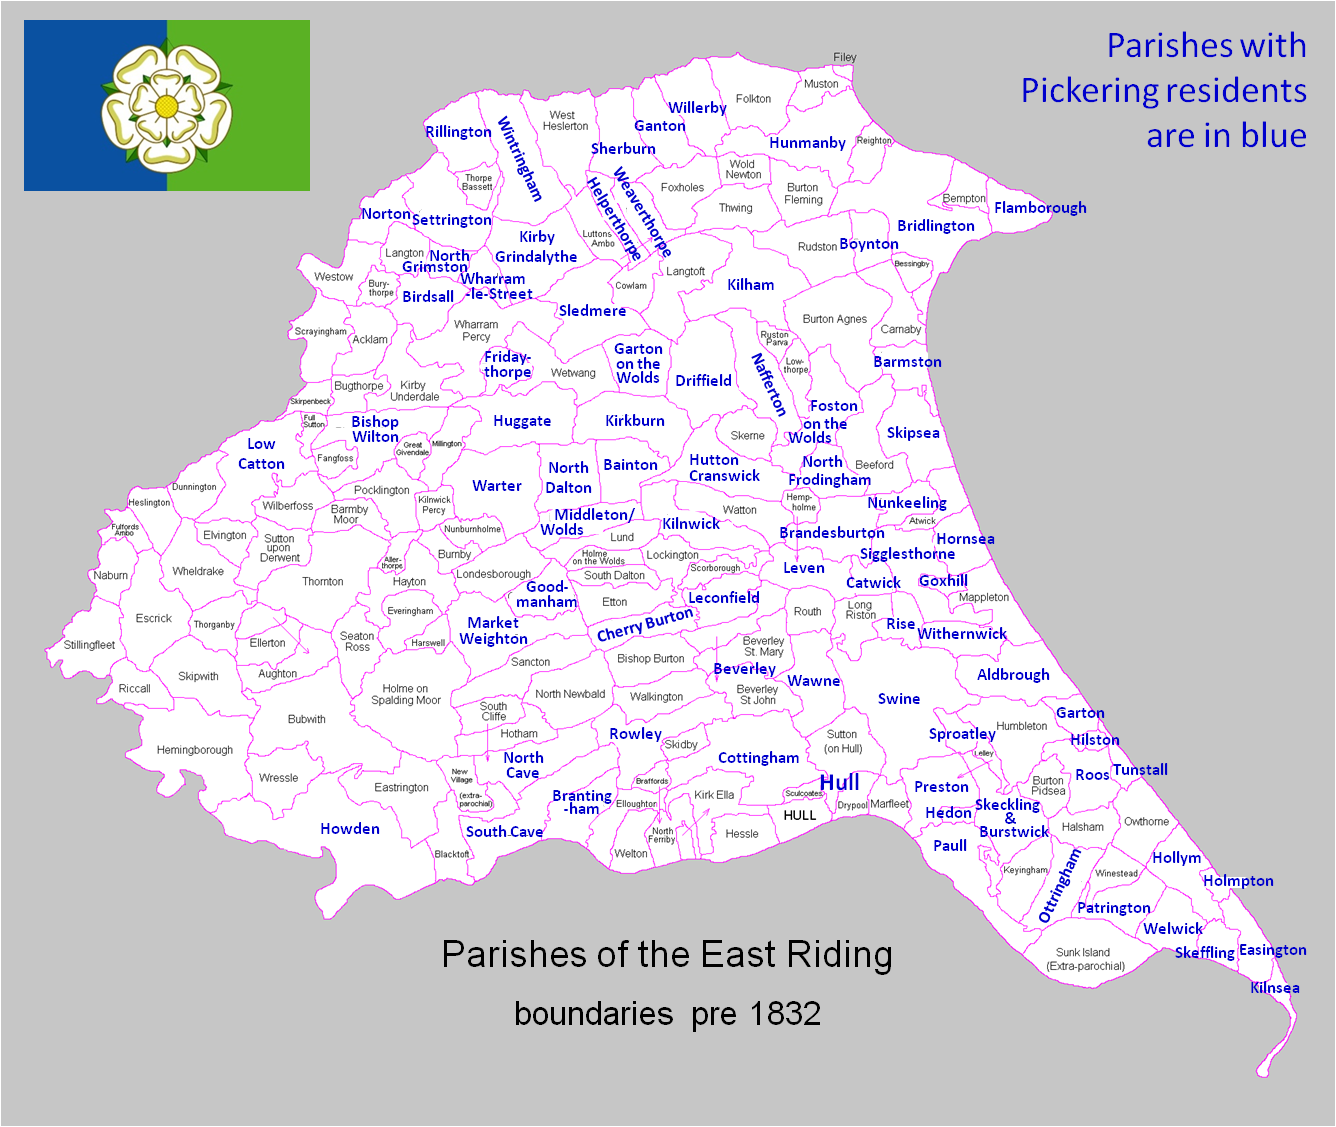 adapted from The Parishes of the East Riding © Colin Hinson